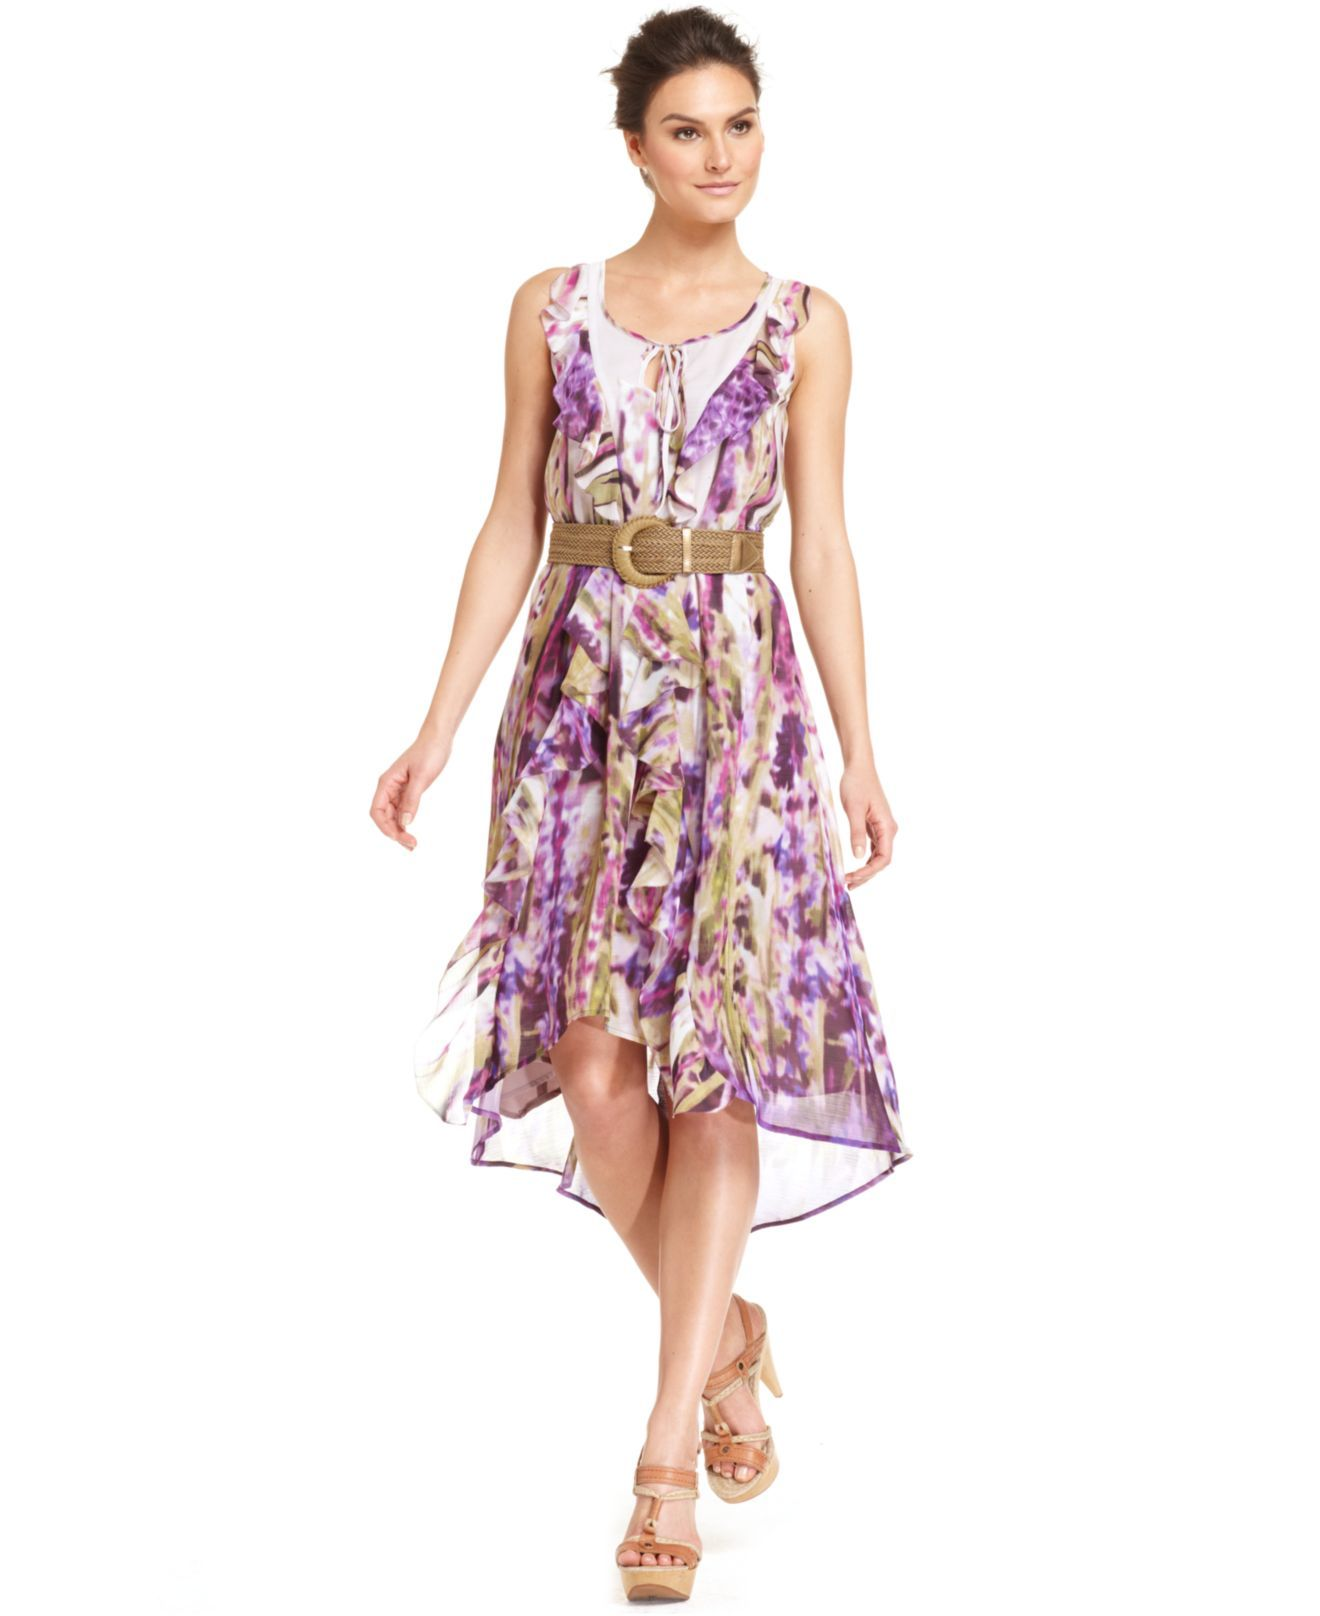 Wedding dresses at macy's  Nine West Dress Sleeveless Belted Ruffled Printed High Low Hem